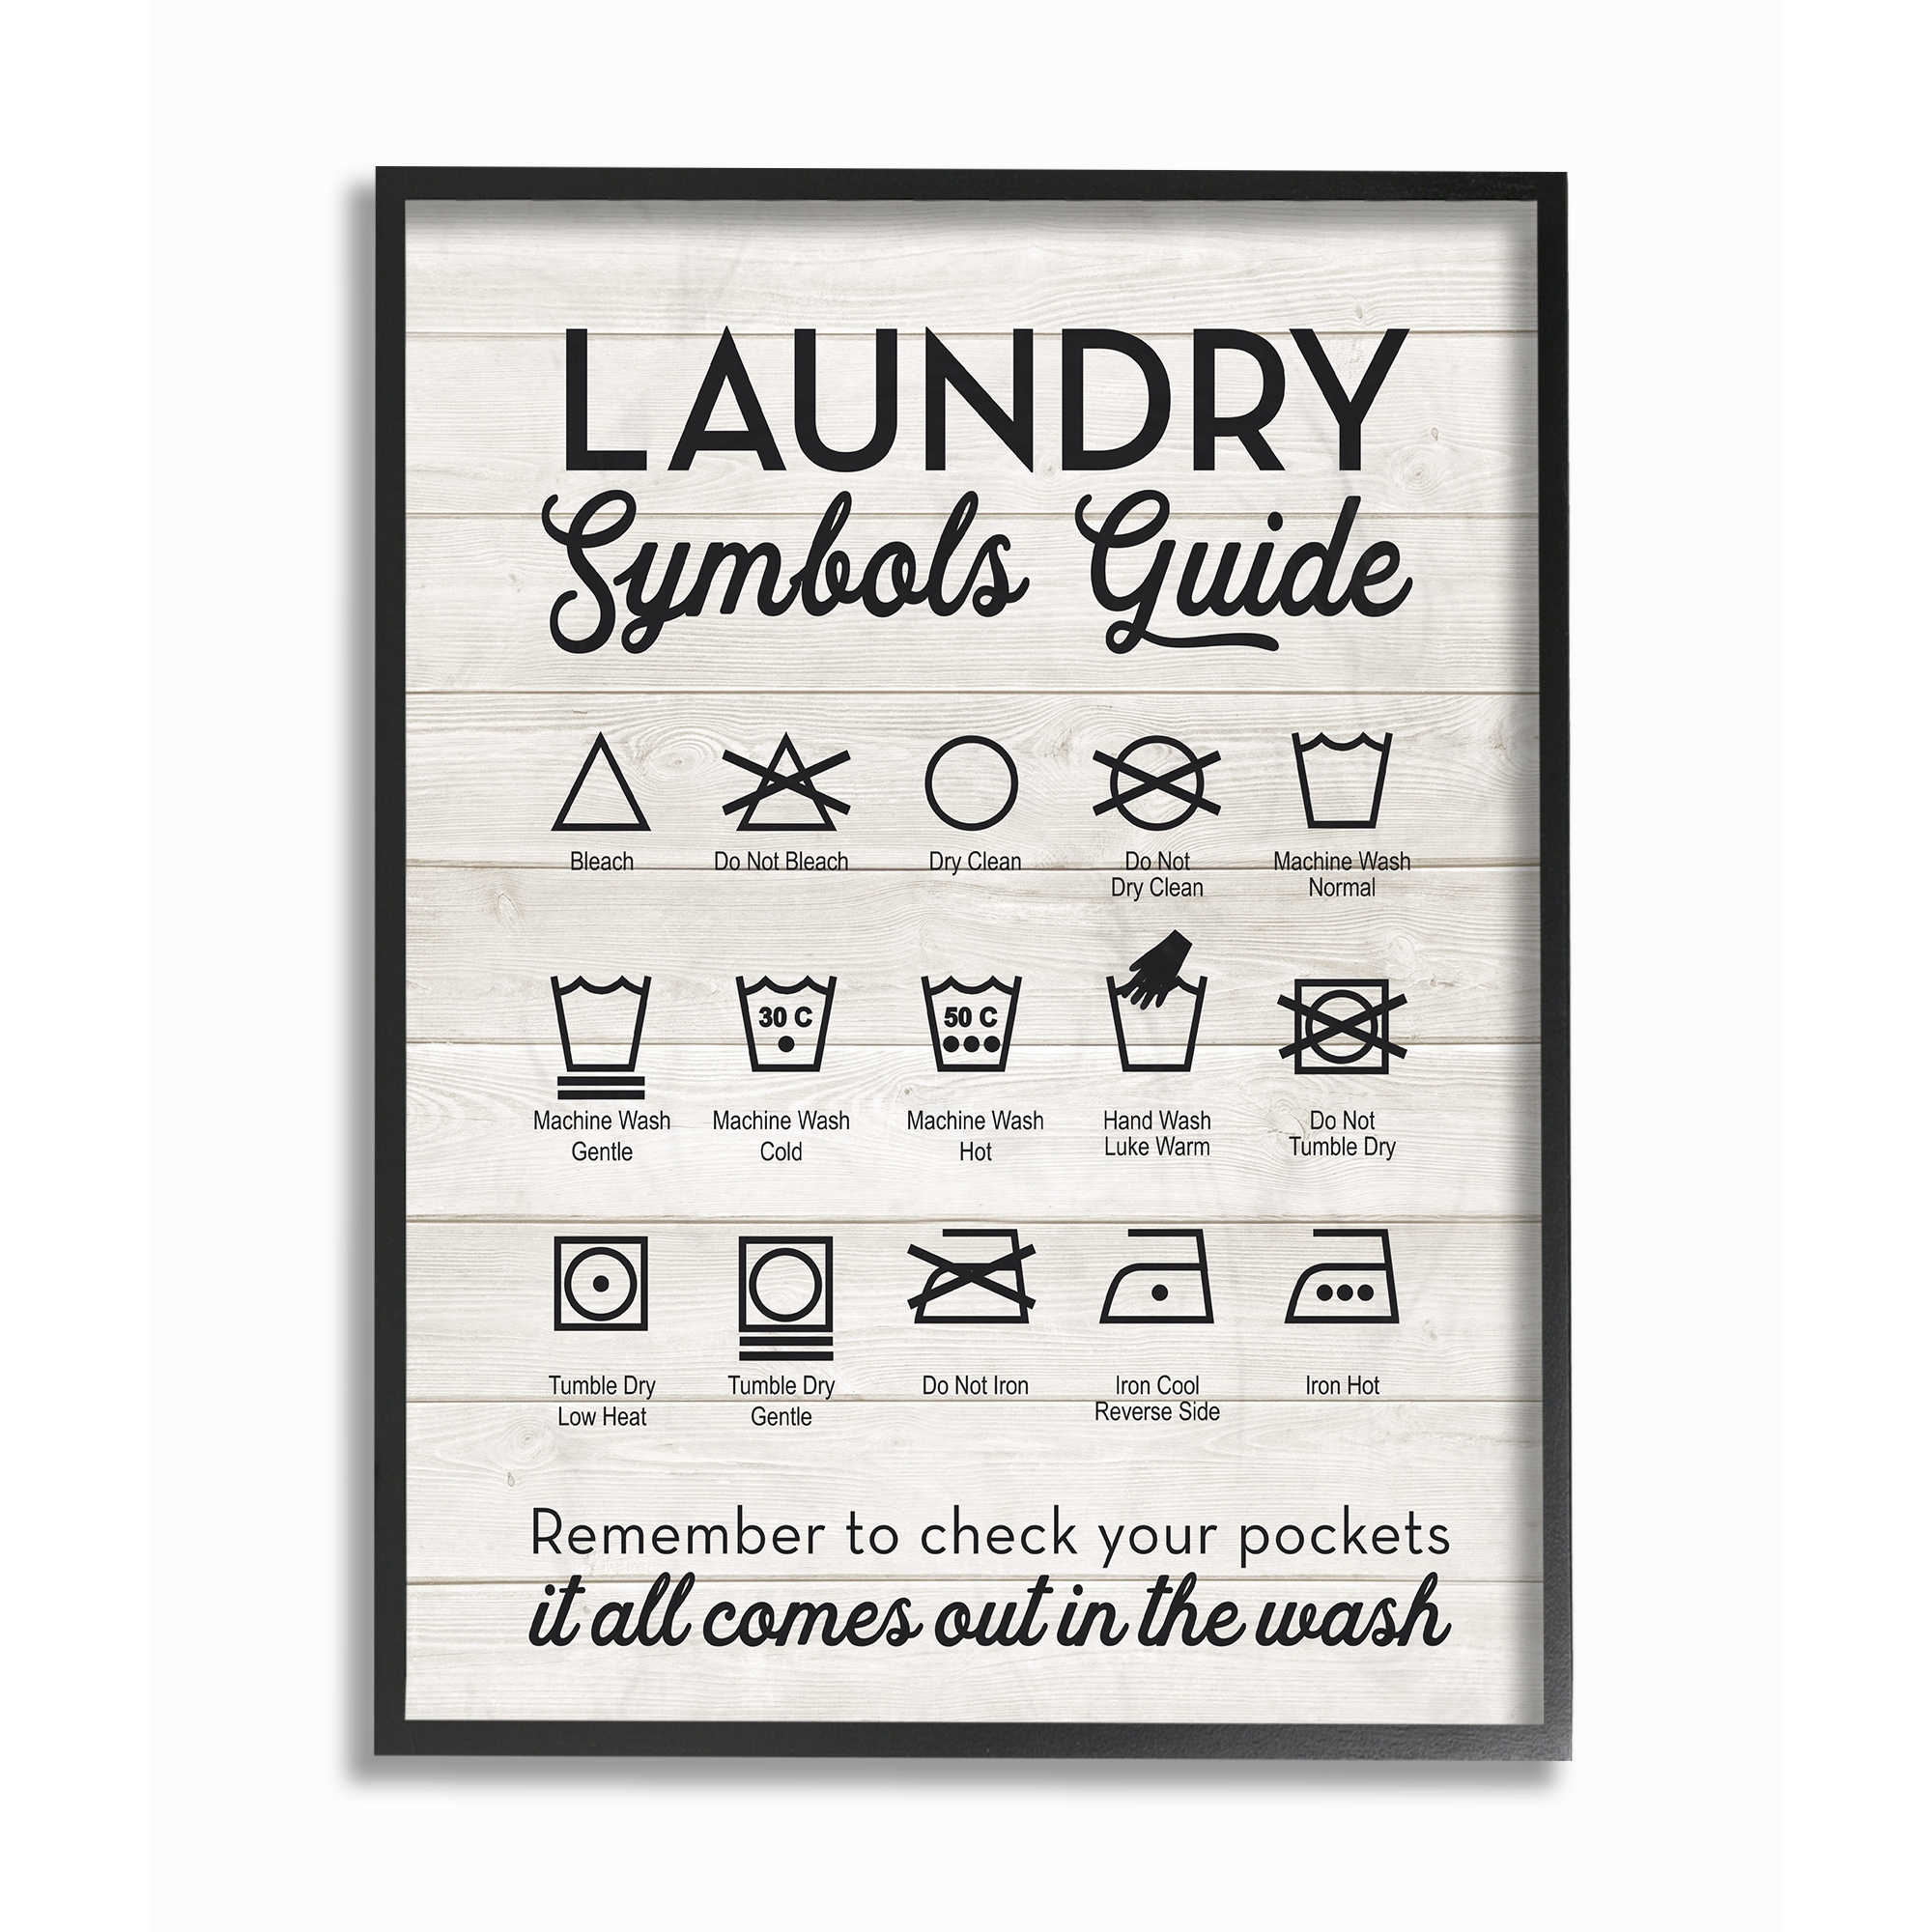 Laundry Symbols Poster Laundry Symbols Guide Typography Framed Giclee Texturized Art